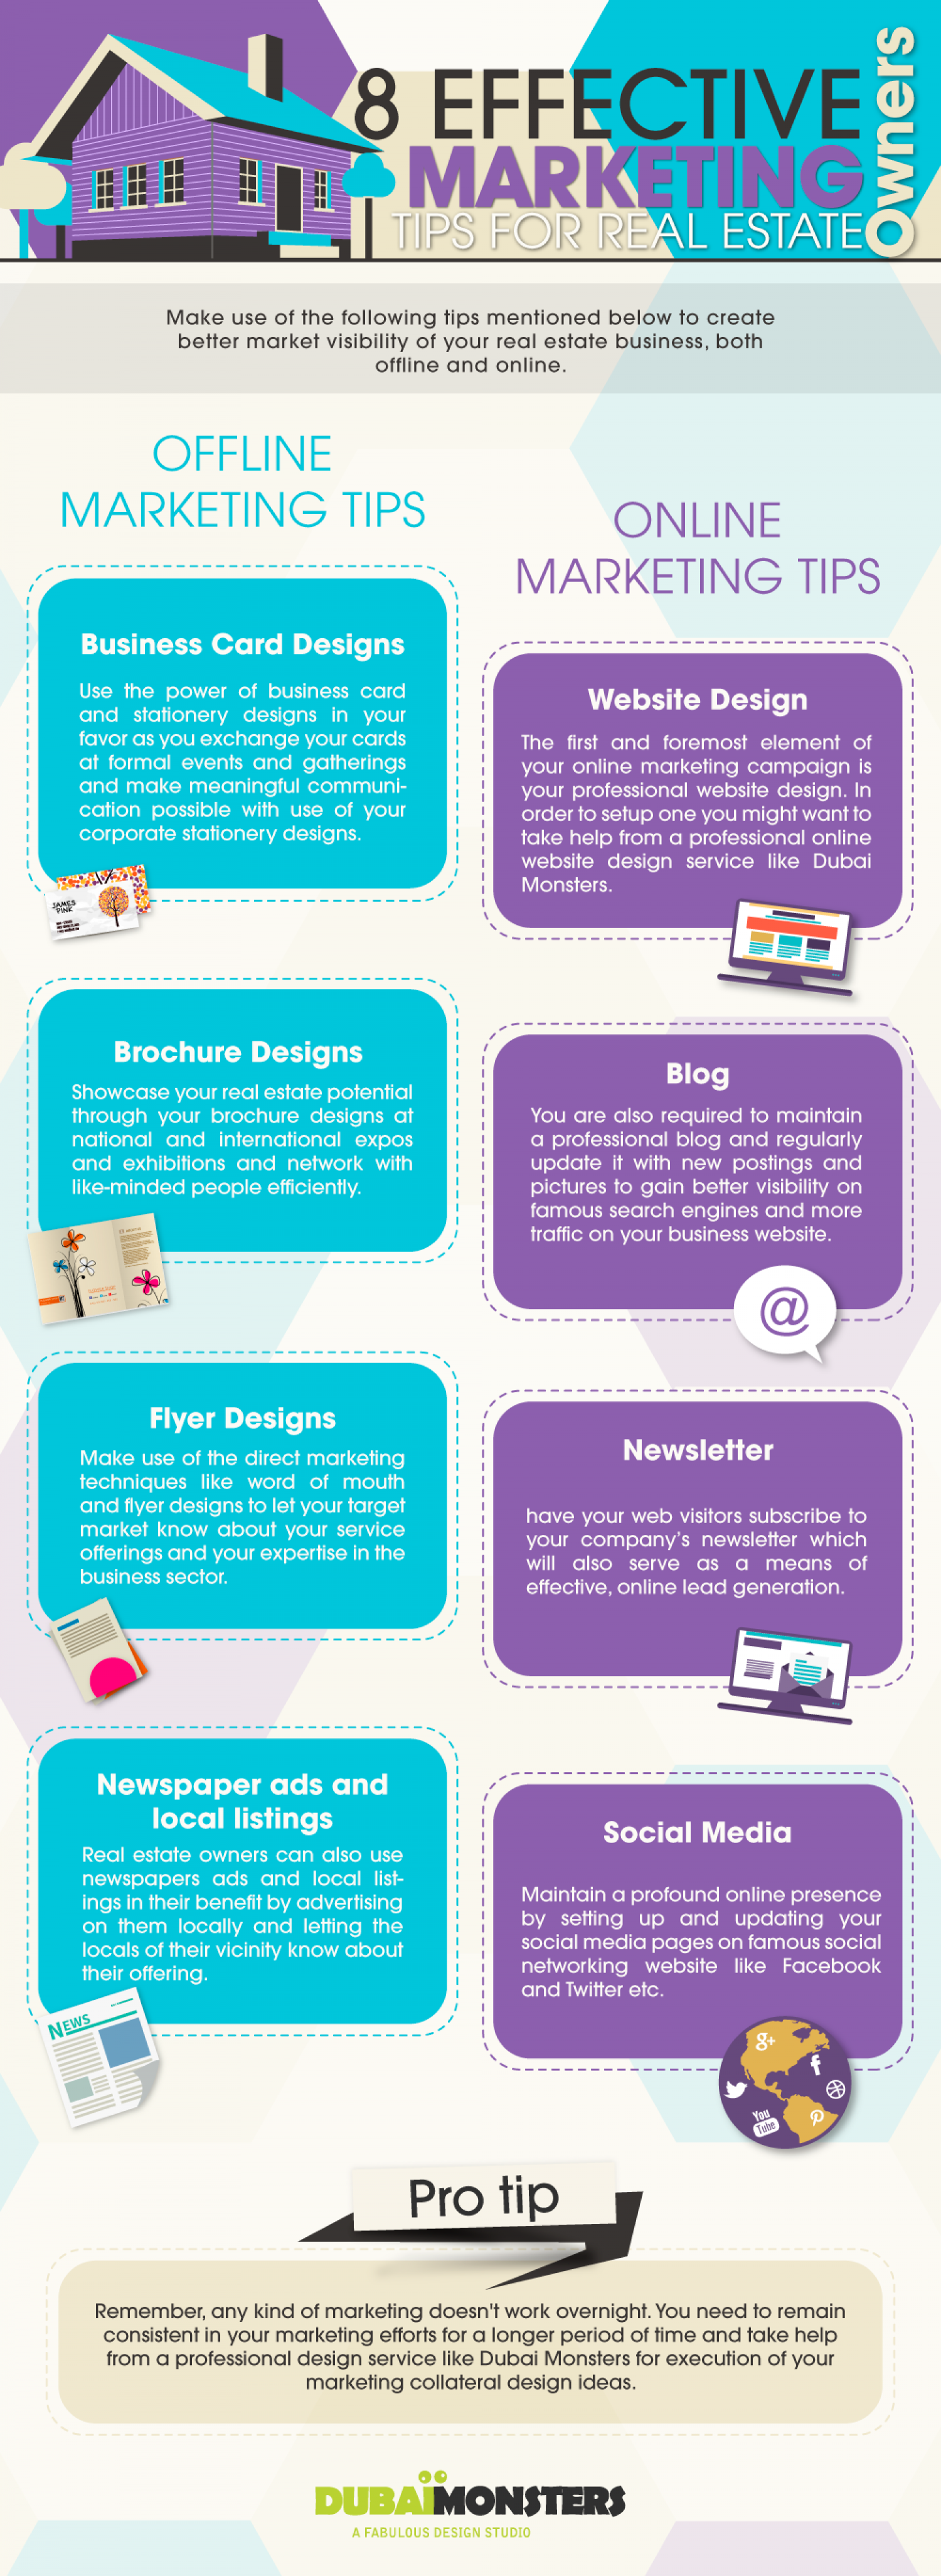 8 Effective Marketing Tips for Real Estate Owners Infographic